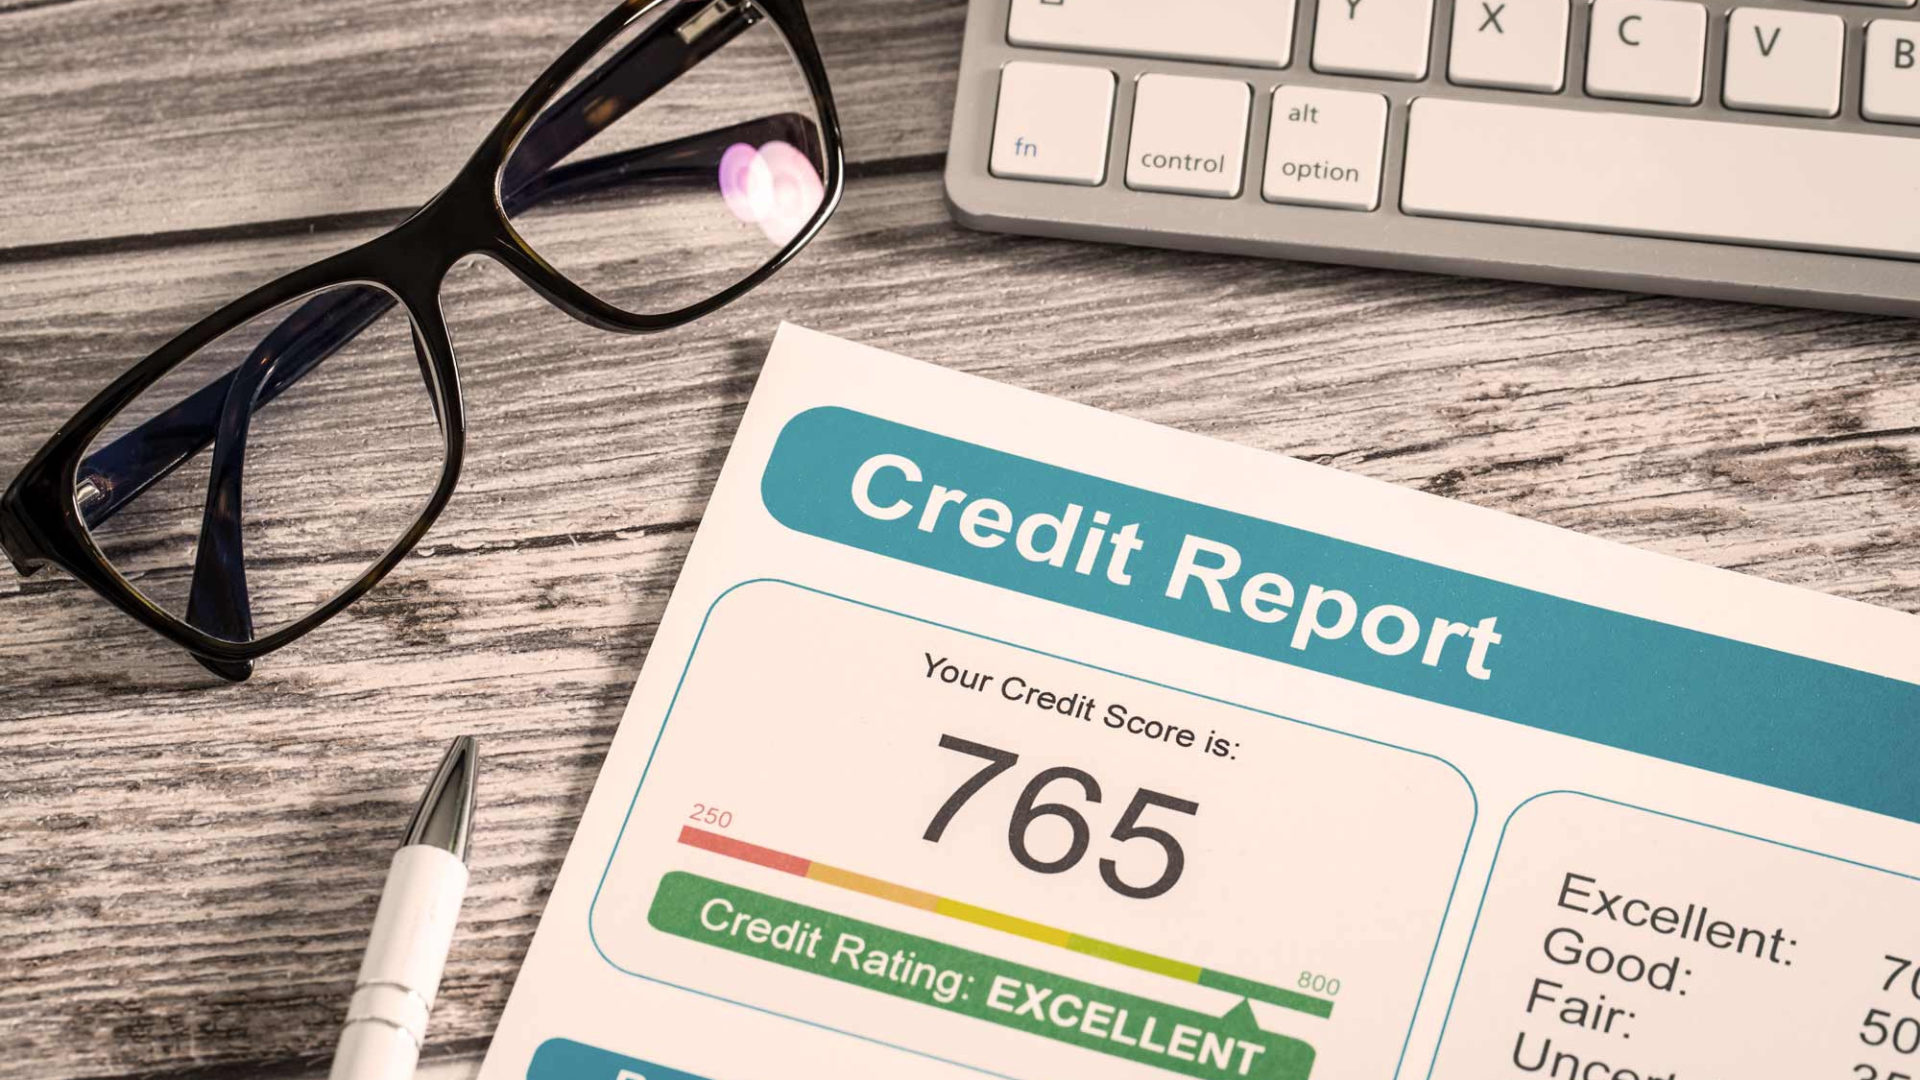 How Does a Credit Score Work?